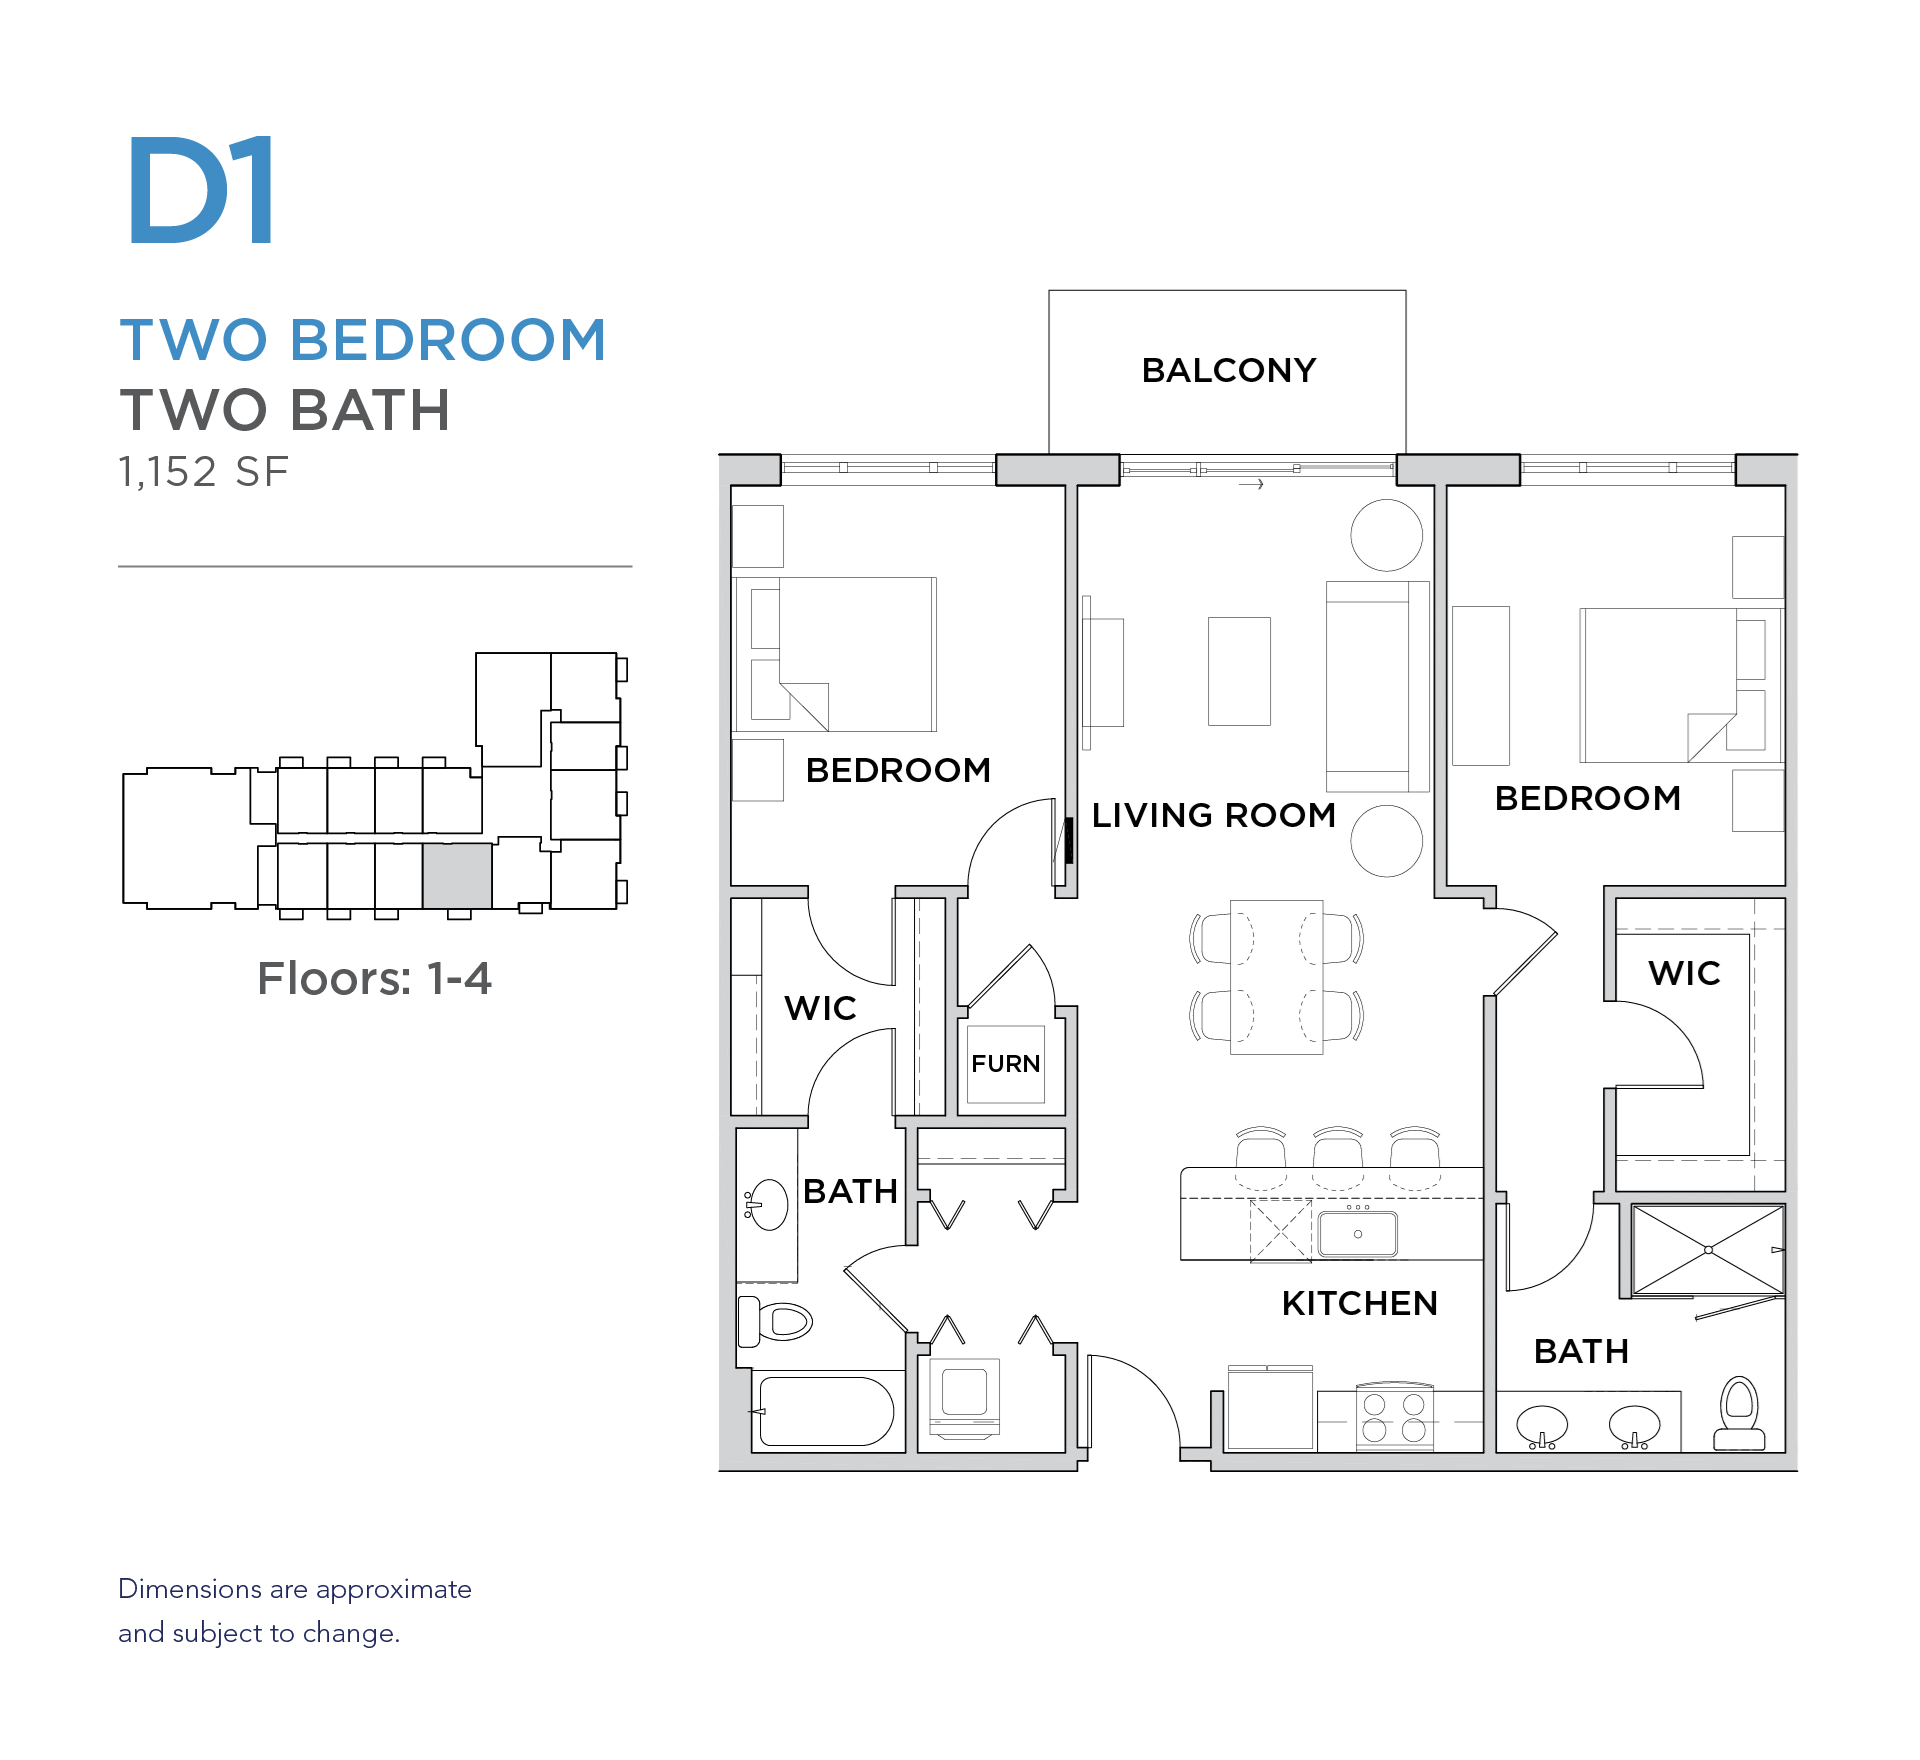 101 West 2 bed 2 bath 1,152 square foot apartment floor plan